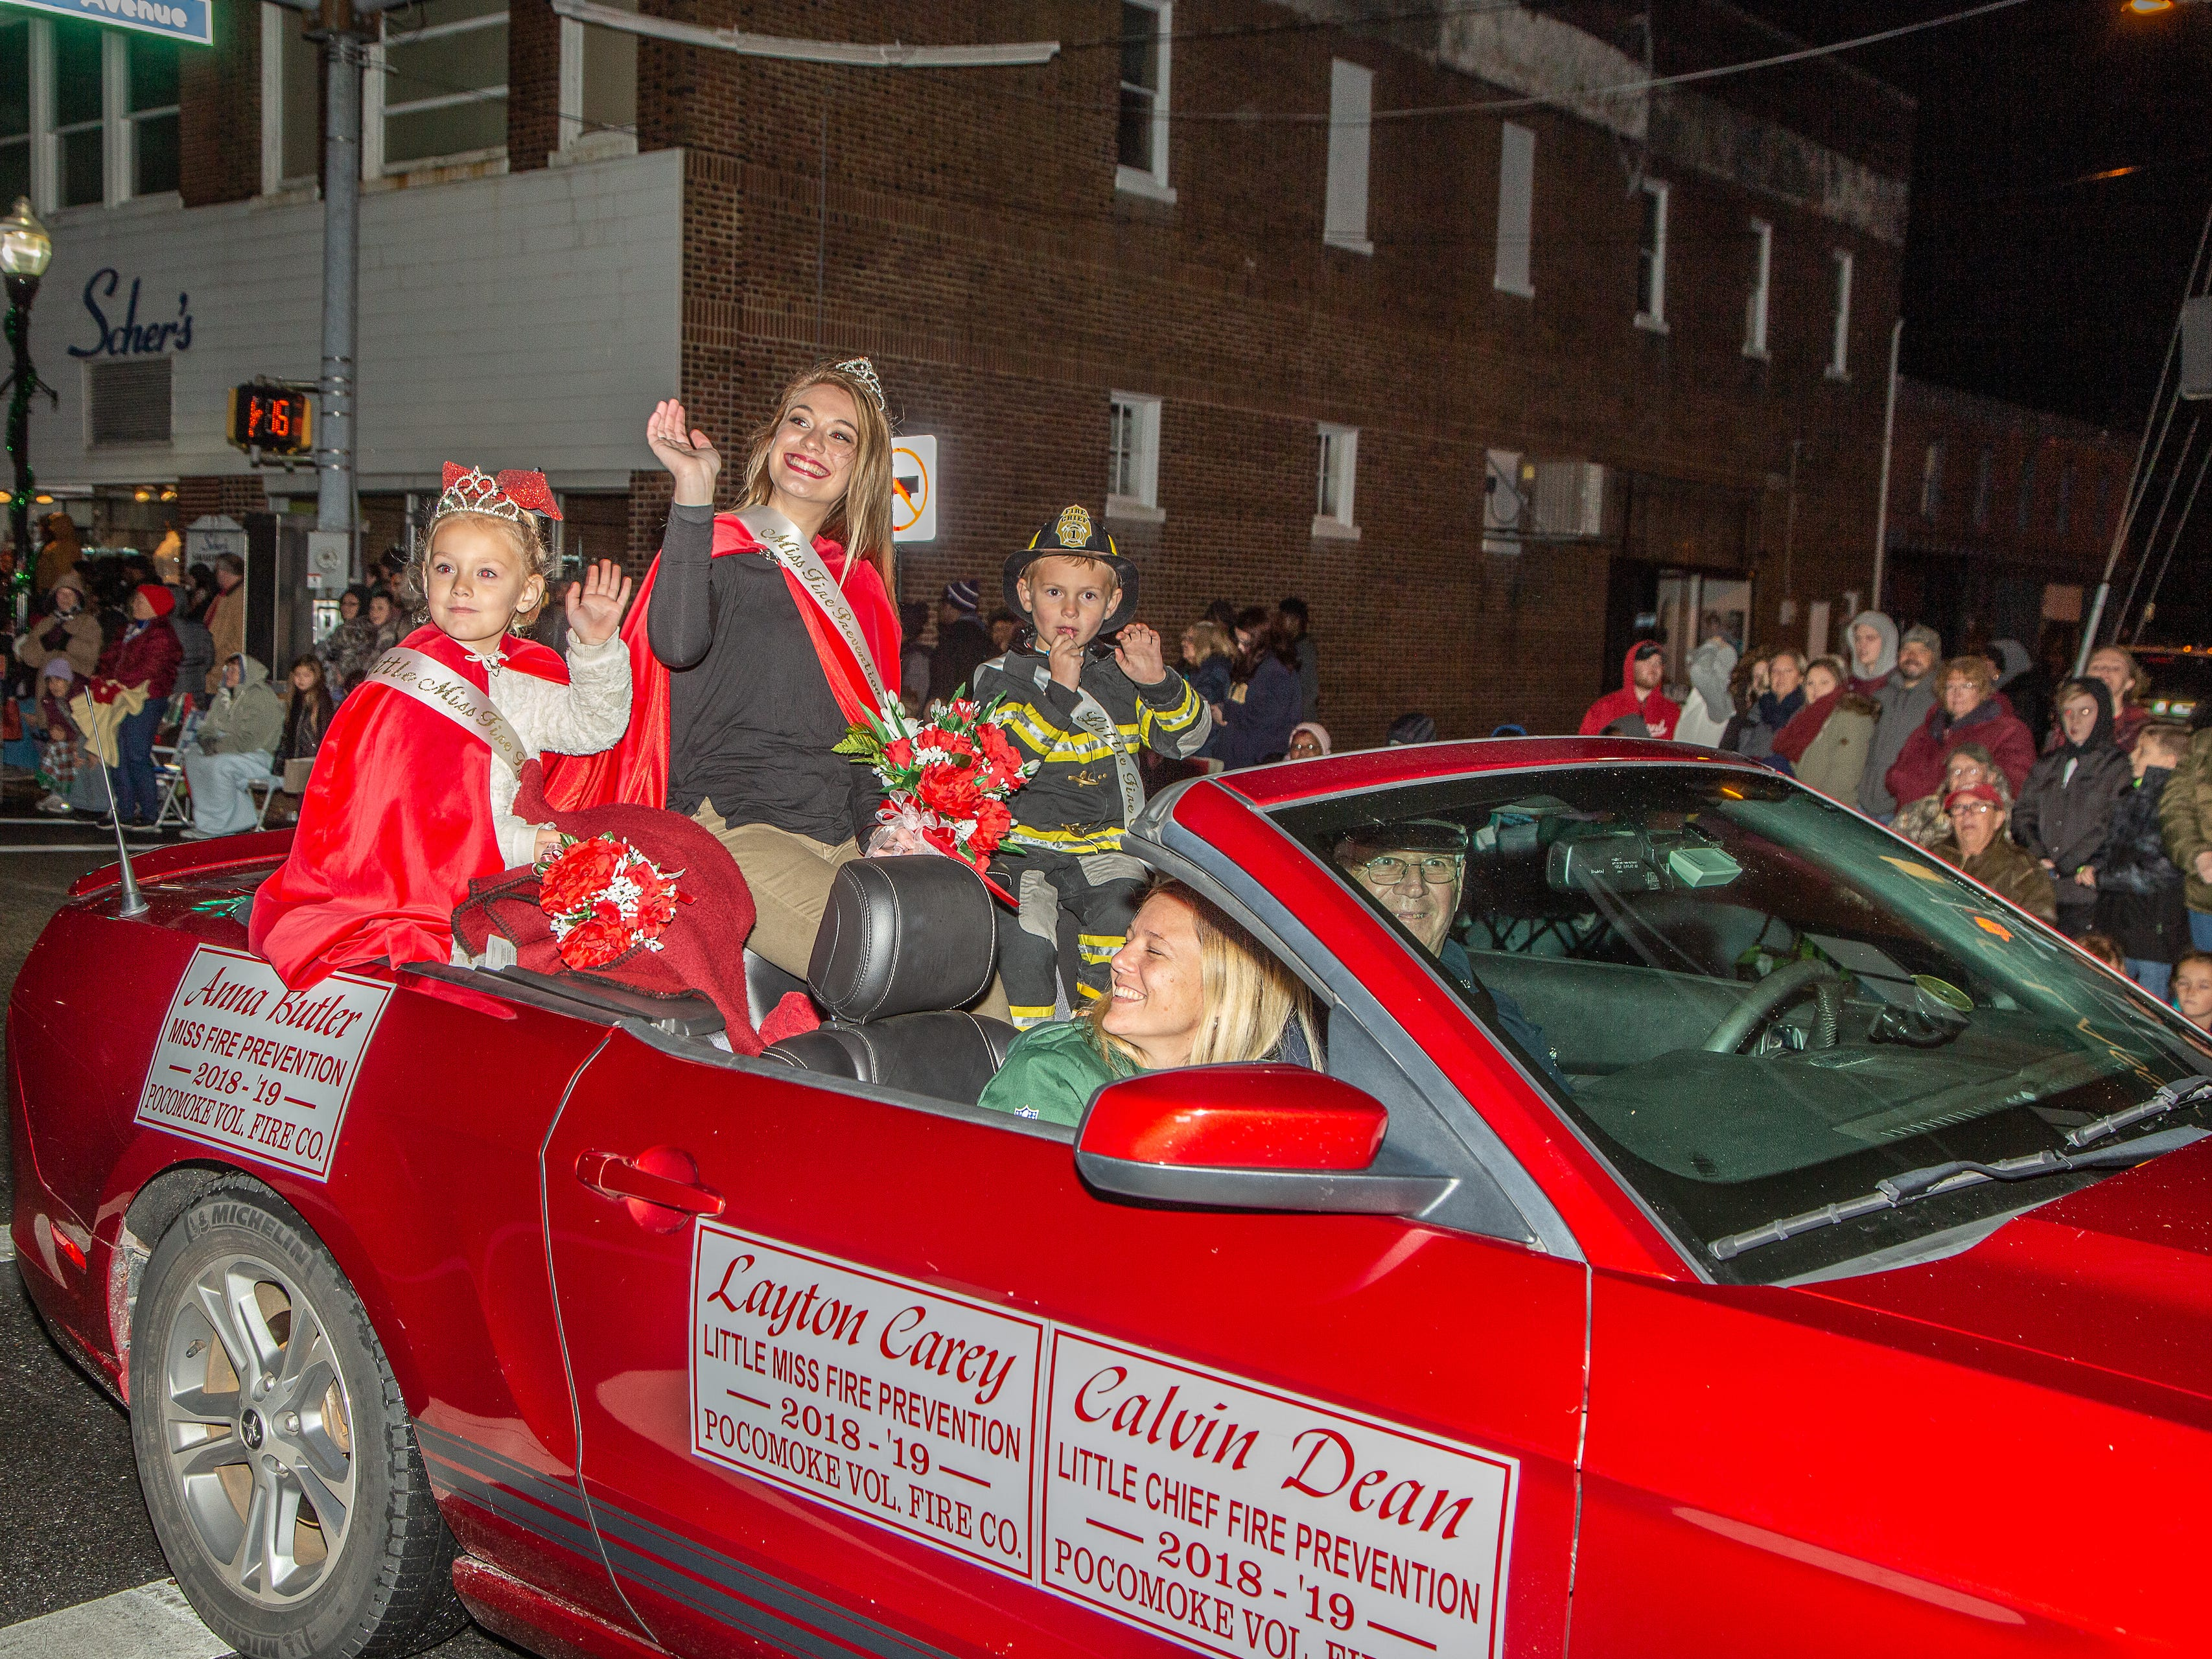 Pocomoke Volunteer Fire Company's fire prevention royalty rides in the annual Christmas parades.